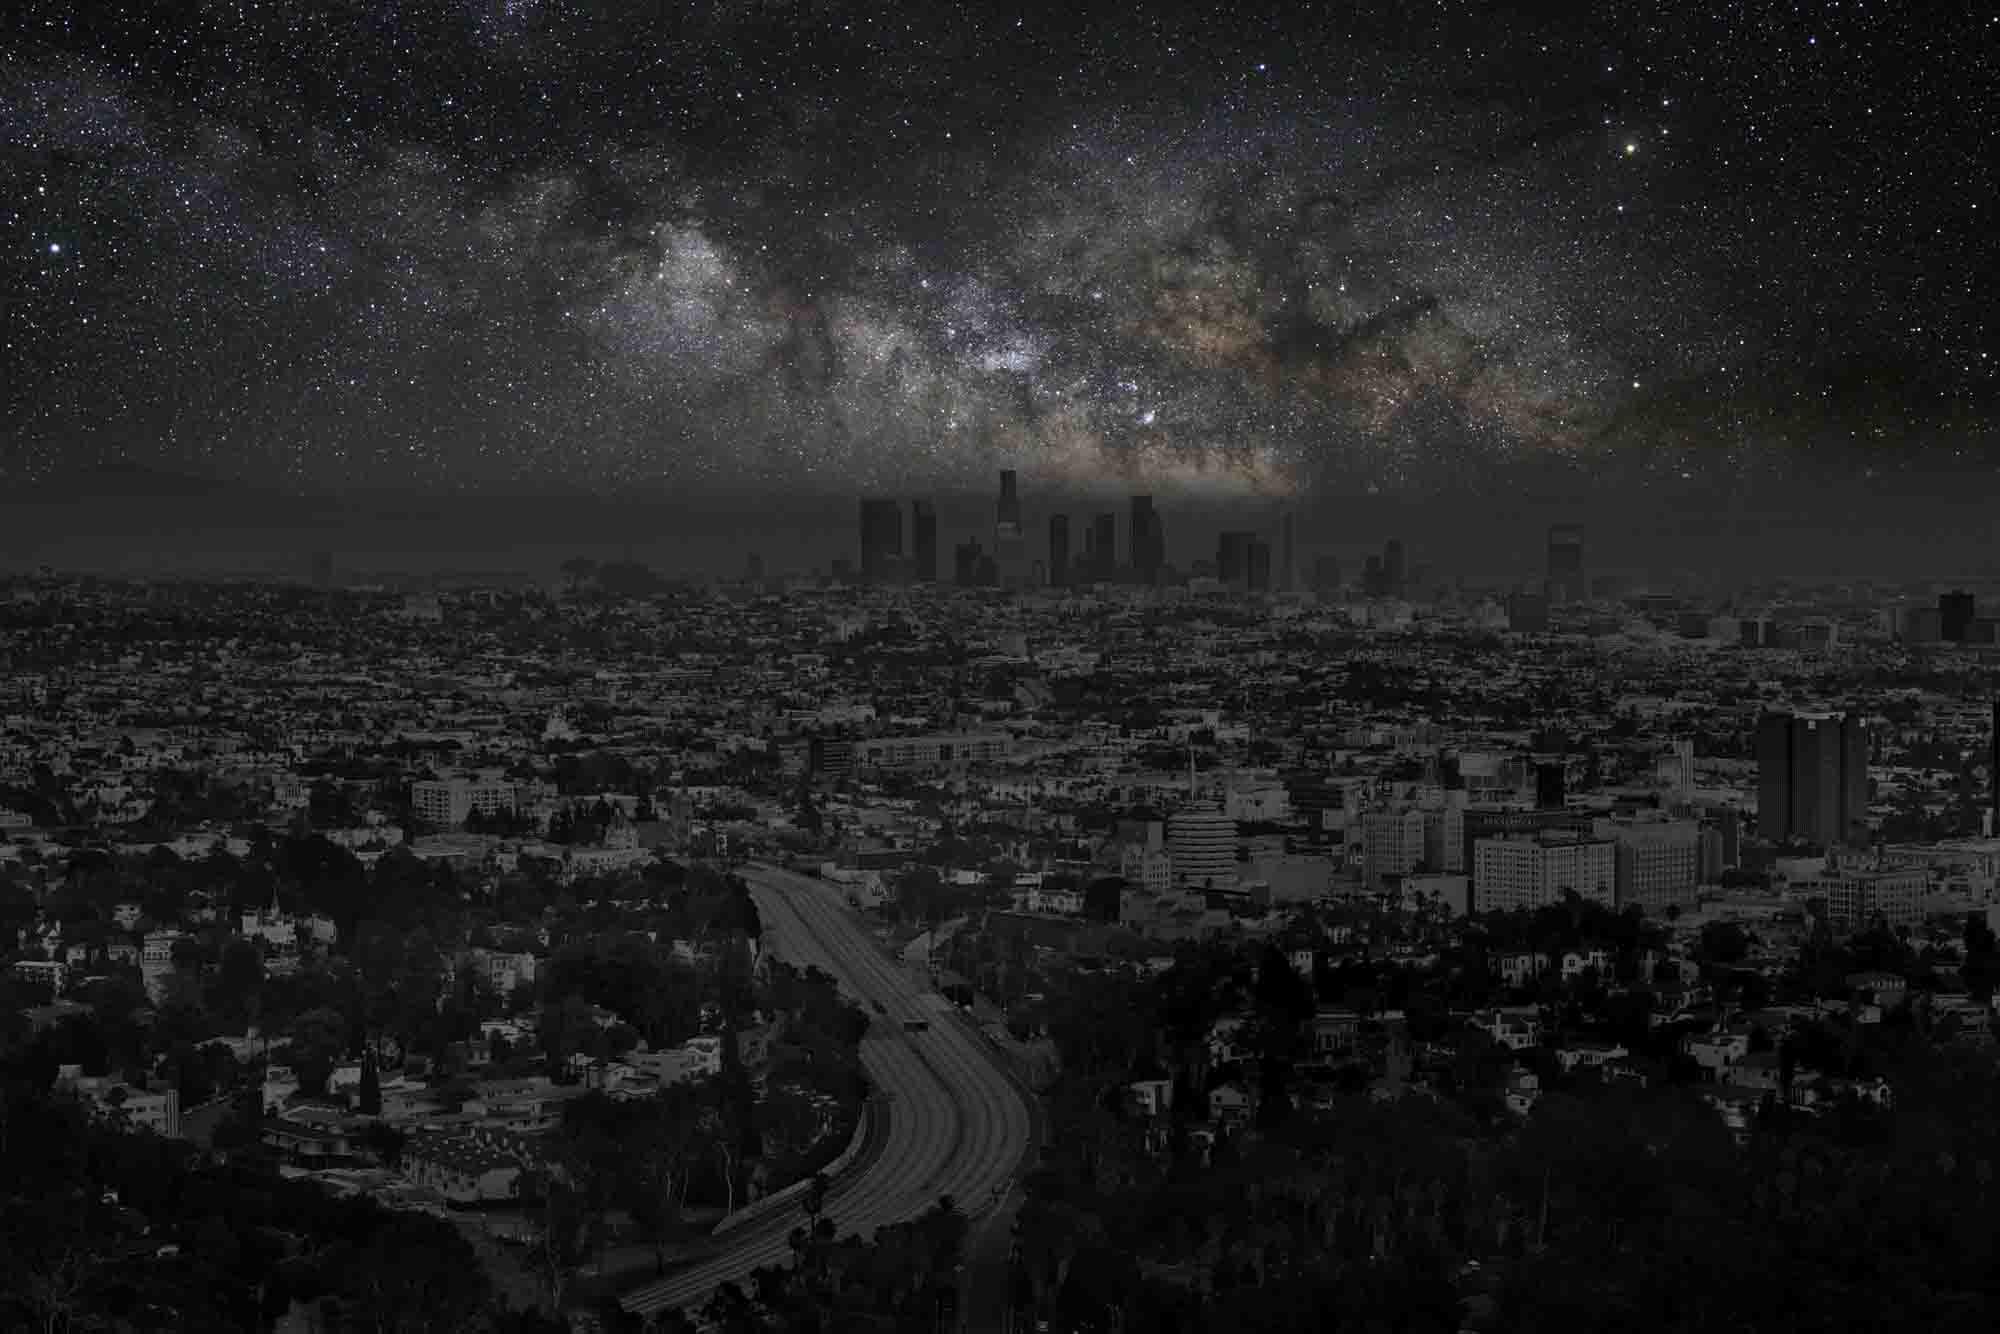 Los Angeles 34° 06' 58'' N  2012-06-15  lst 14:52<br/>Darkened Cities - Villes éteintes